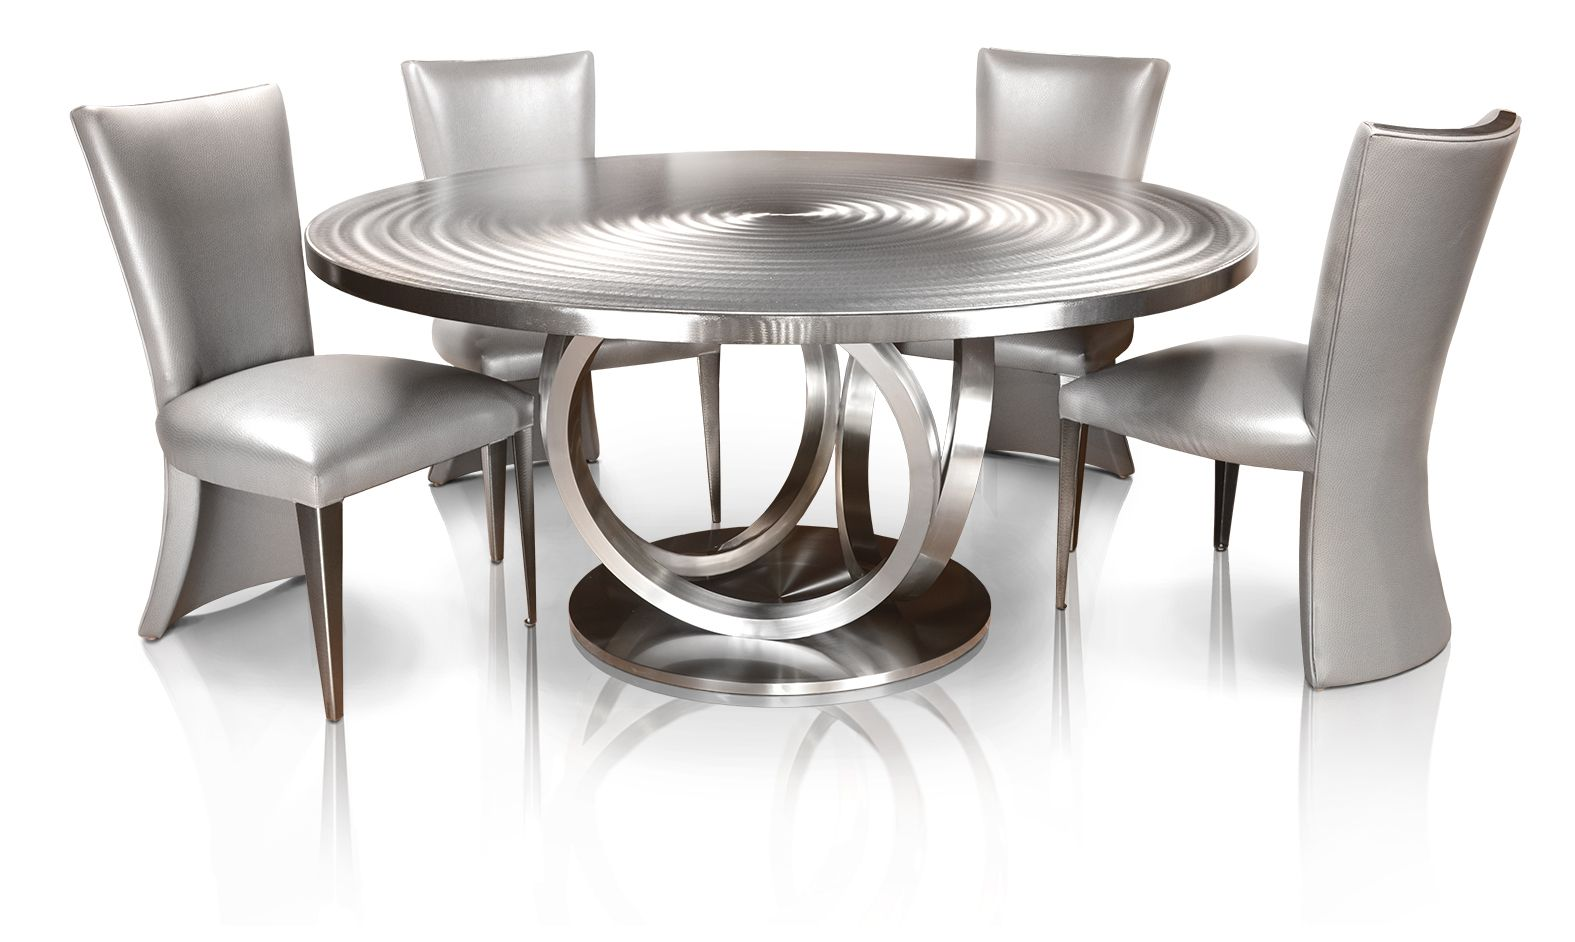 "Stainless Steel Dining Room Tables 66"" Round Stainless Steel Metal Dining Tableoios Metals  Oios"